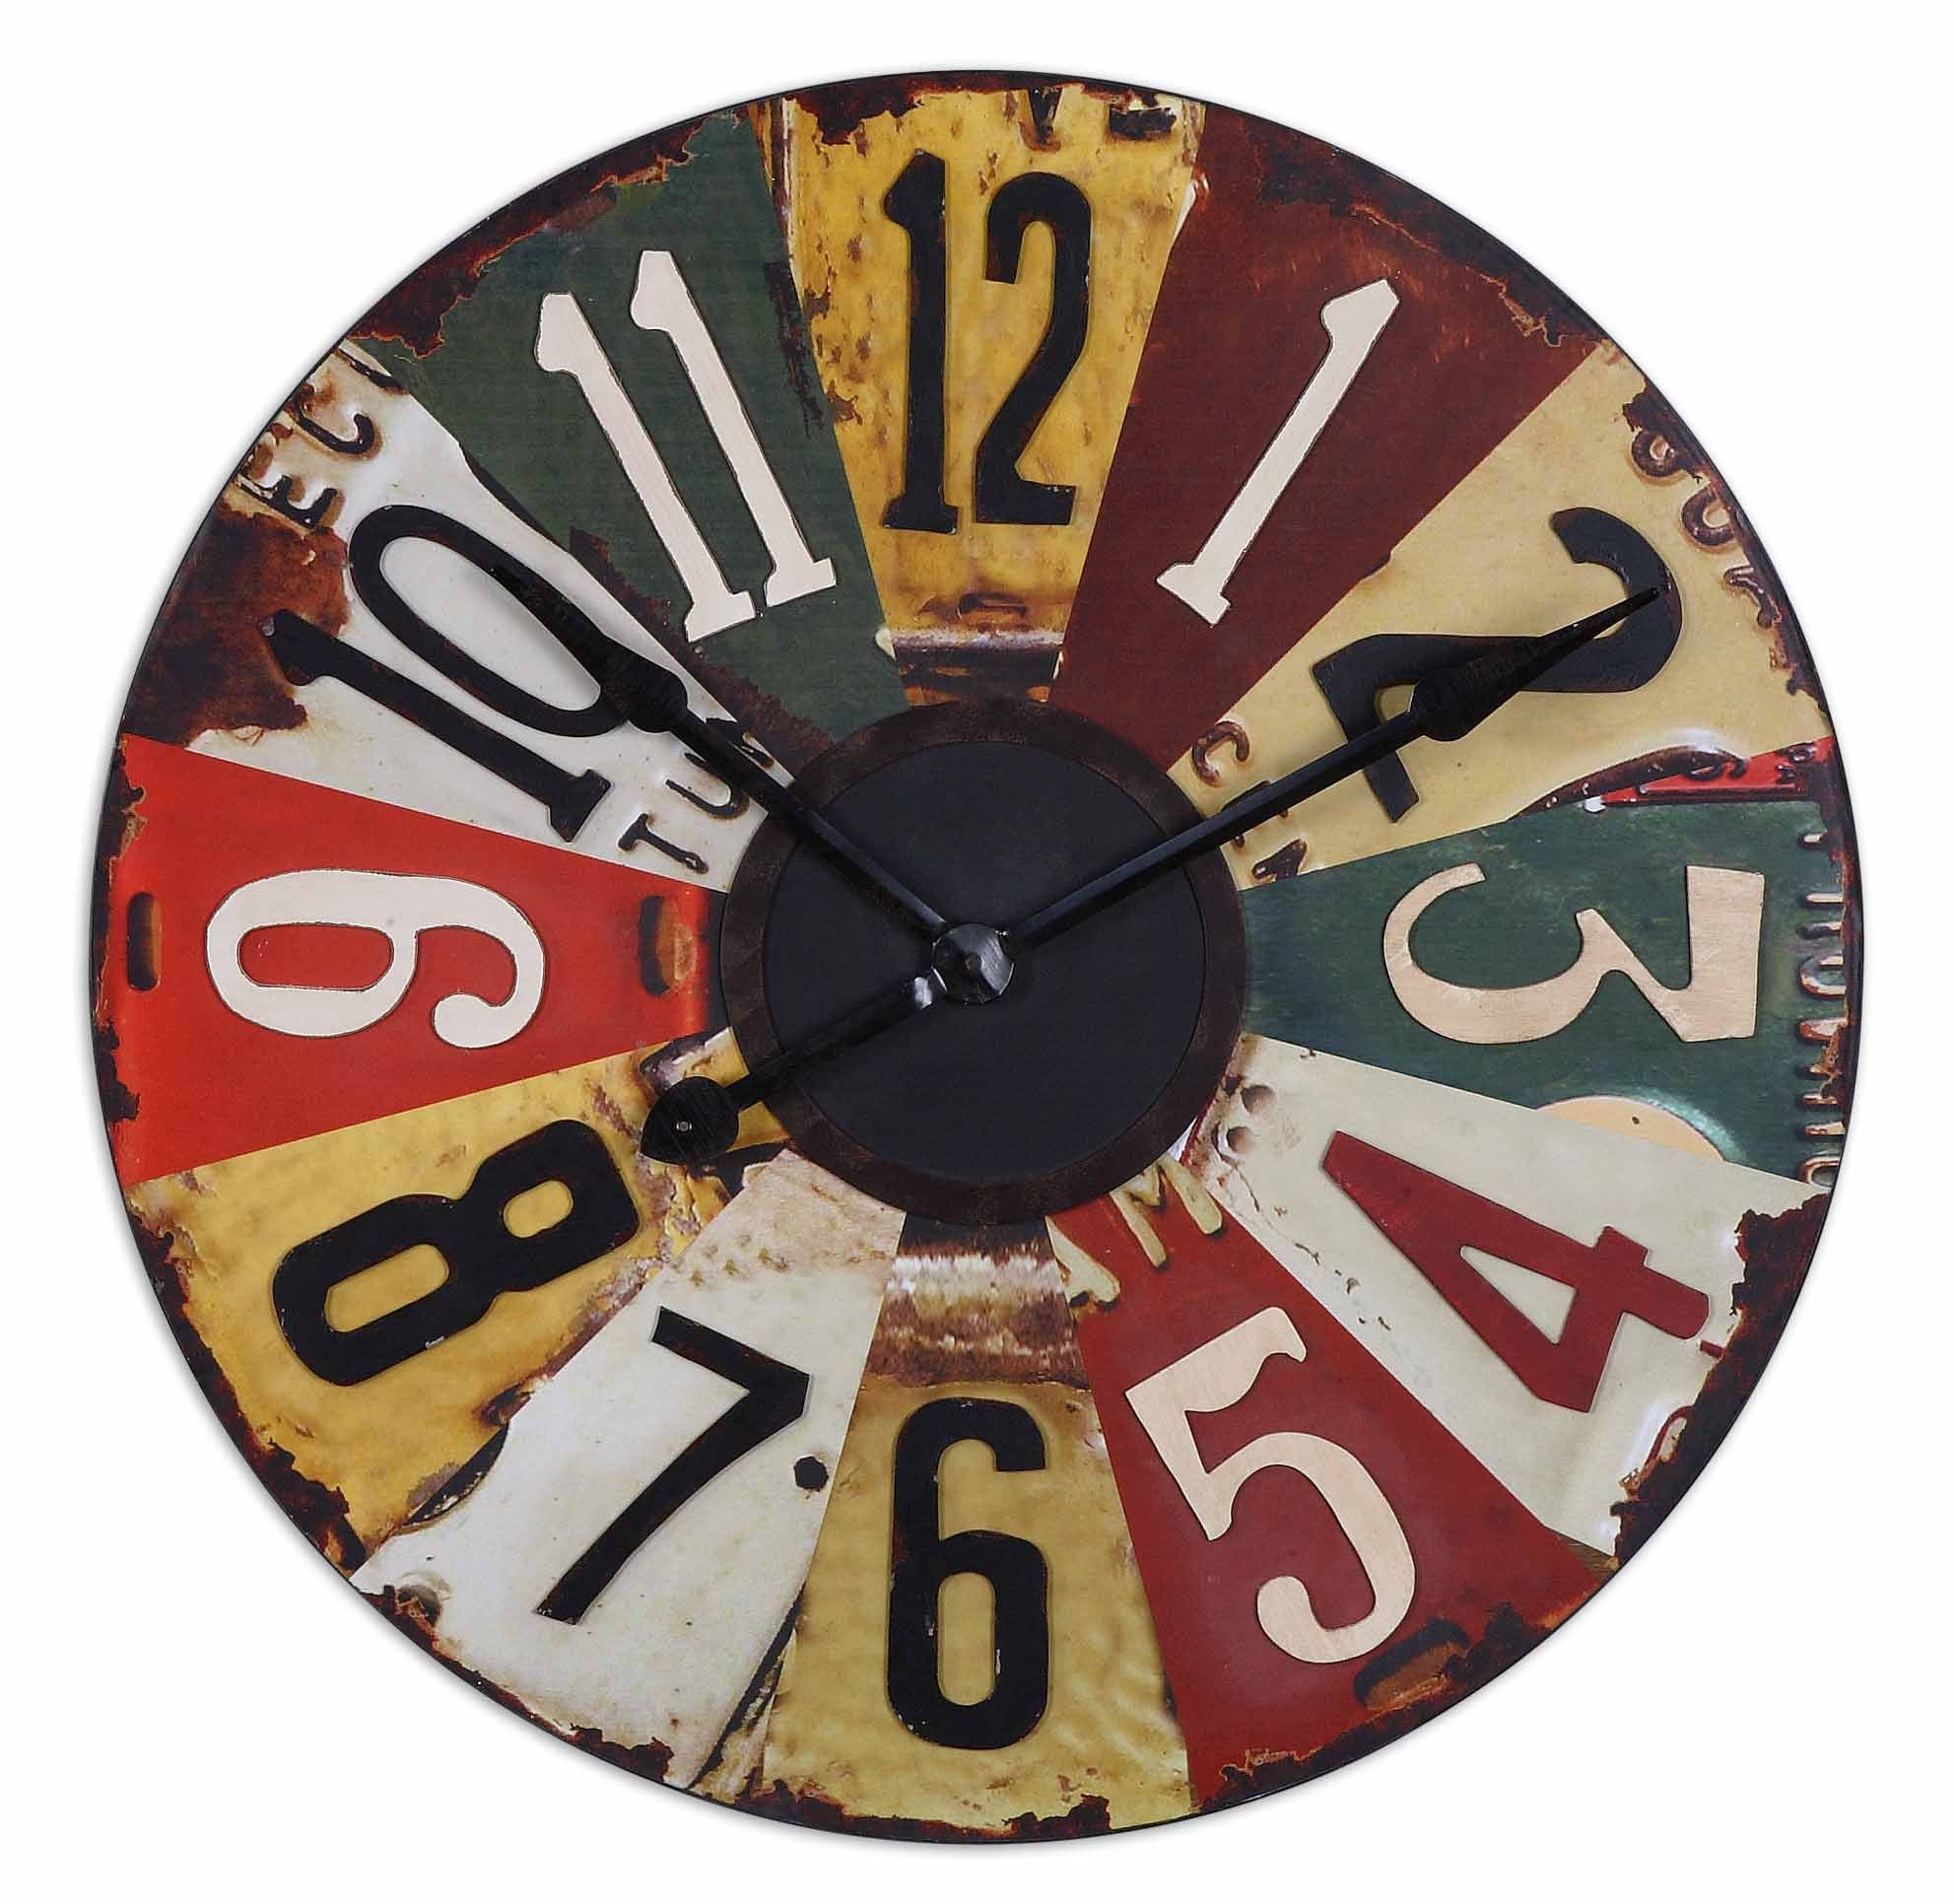 This Colorful Clock Face Consists Of Vintage Pictures Old License Plates With Rustic Bronze Details